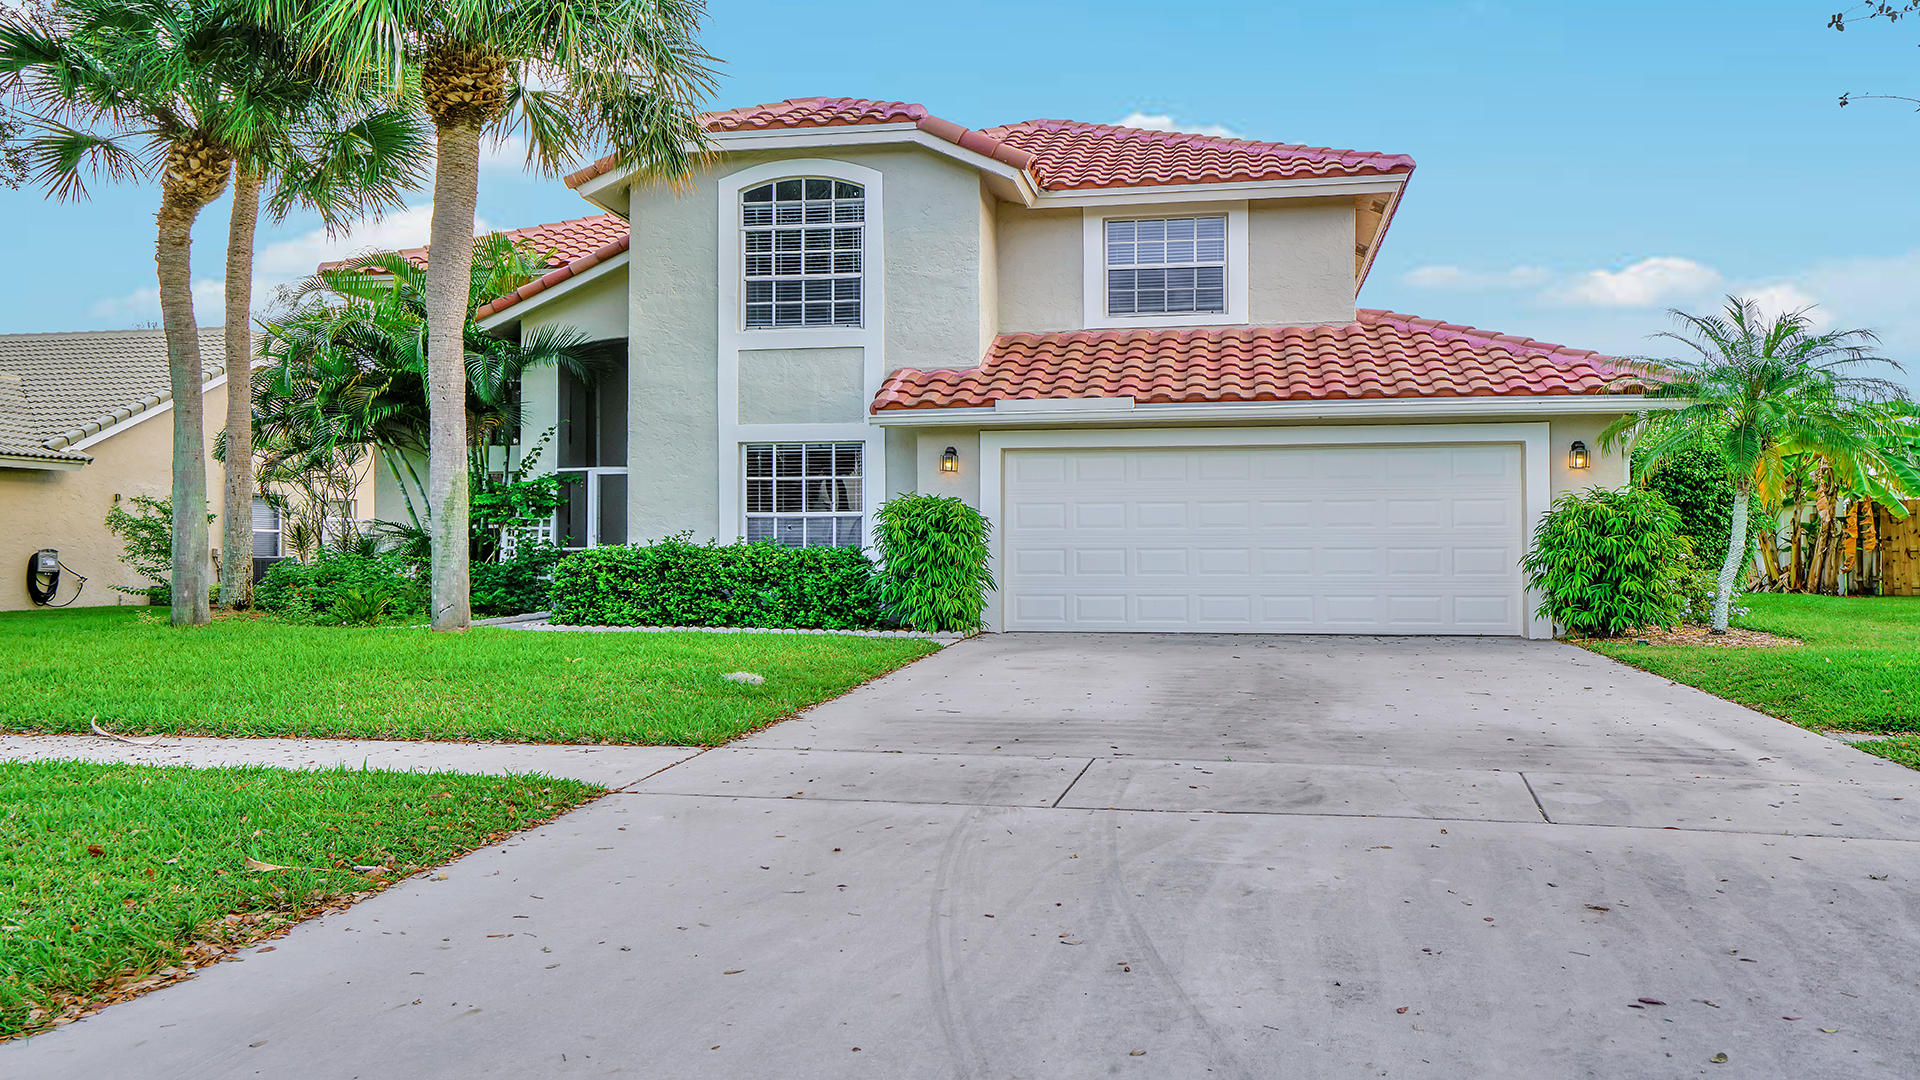 Home for sale in Lake Charleston Lake Worth Florida